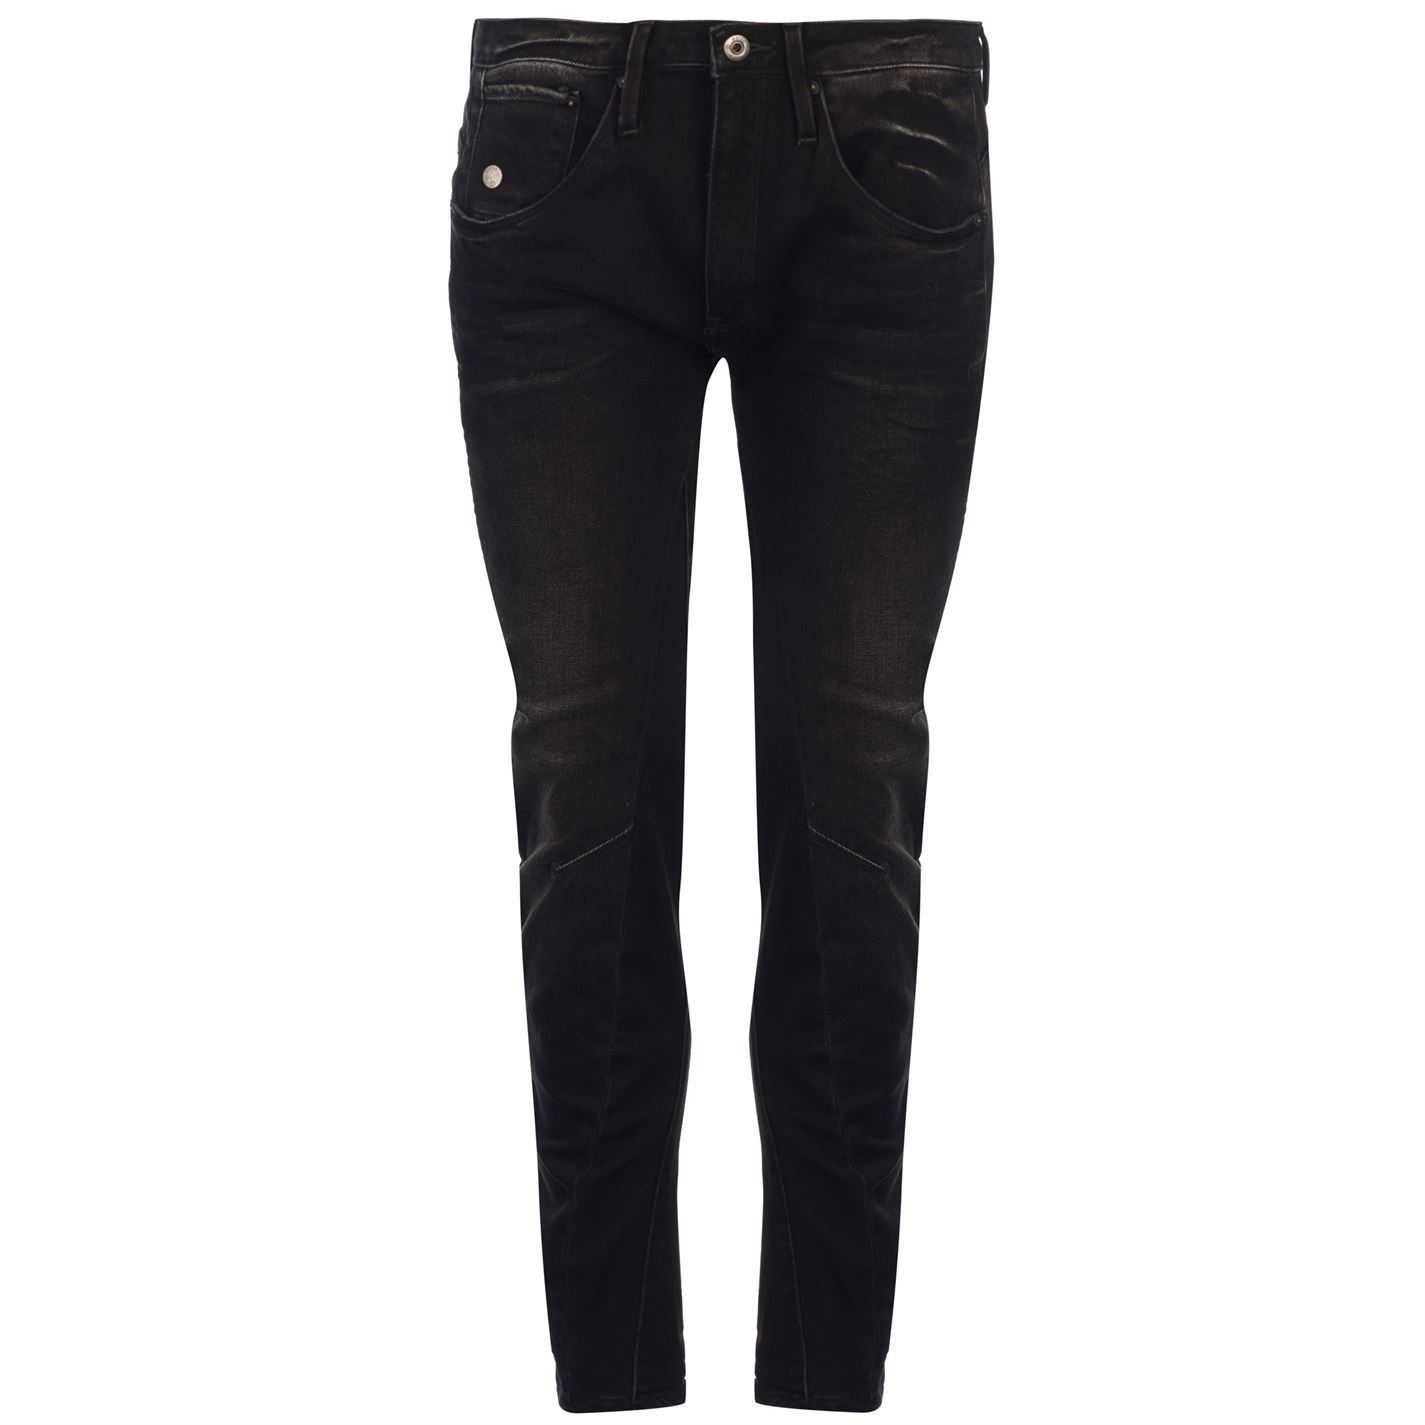 G-Star-Mens-Arc-3D-Low-Boyfriend-Jeans-Straight-Pants-Trousers-Bottoms